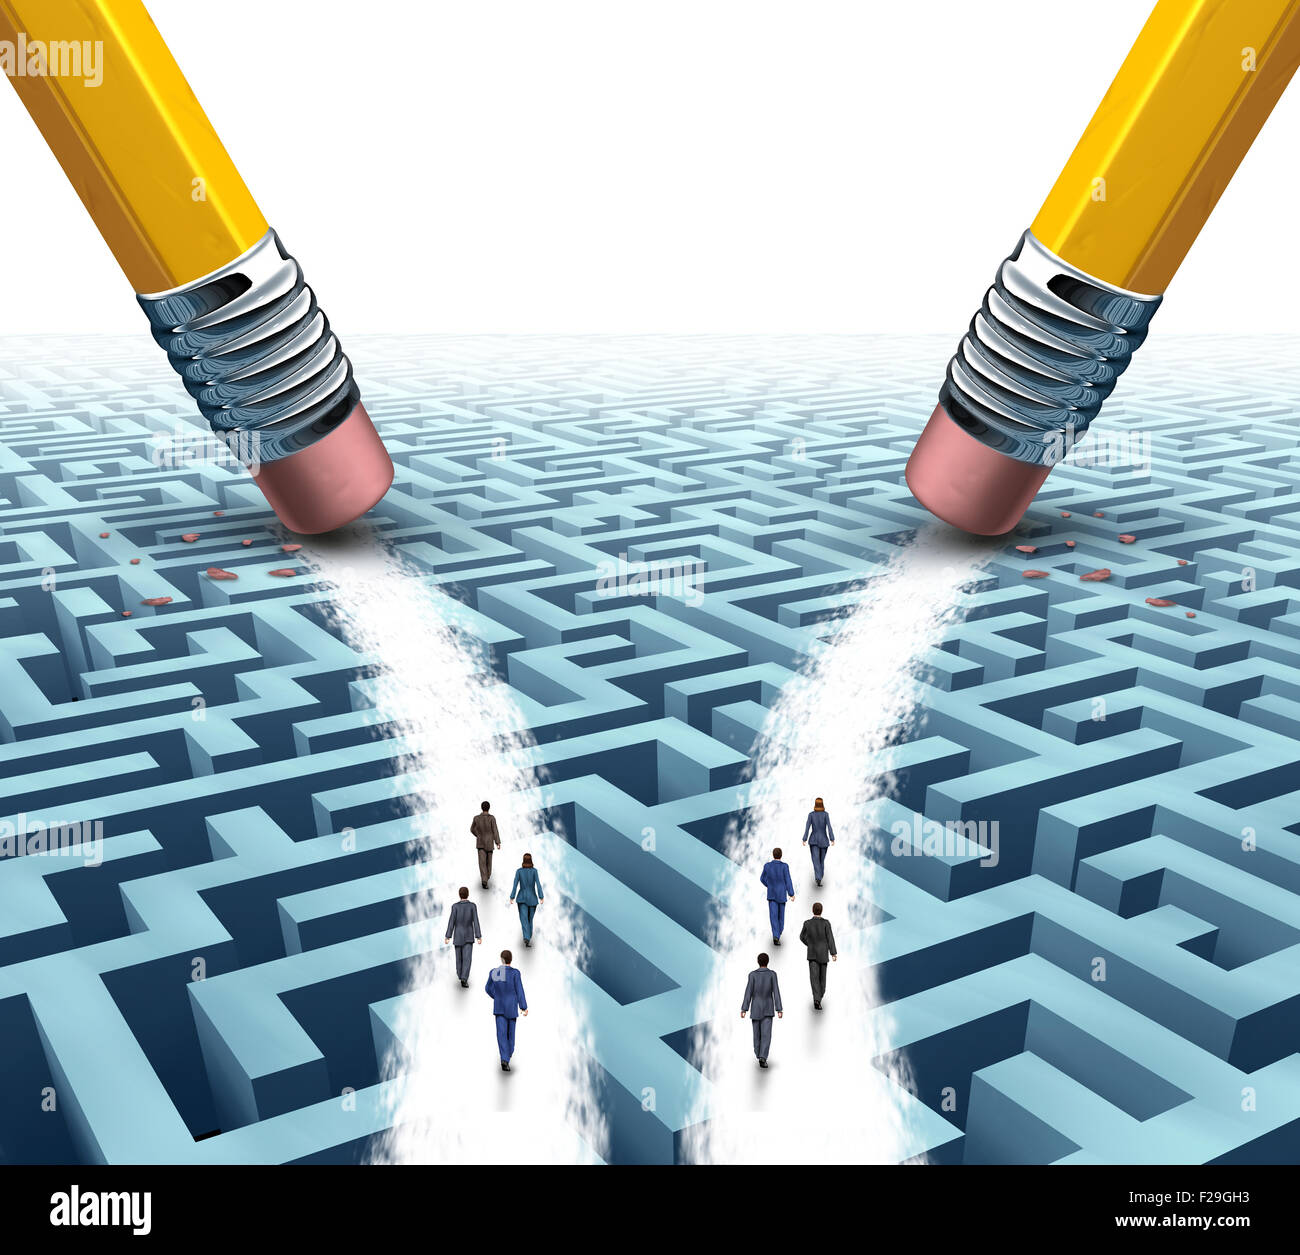 Business team solution choice as two diverse groups of employees on a maze or labyrinth walking on open paths made - Stock Image